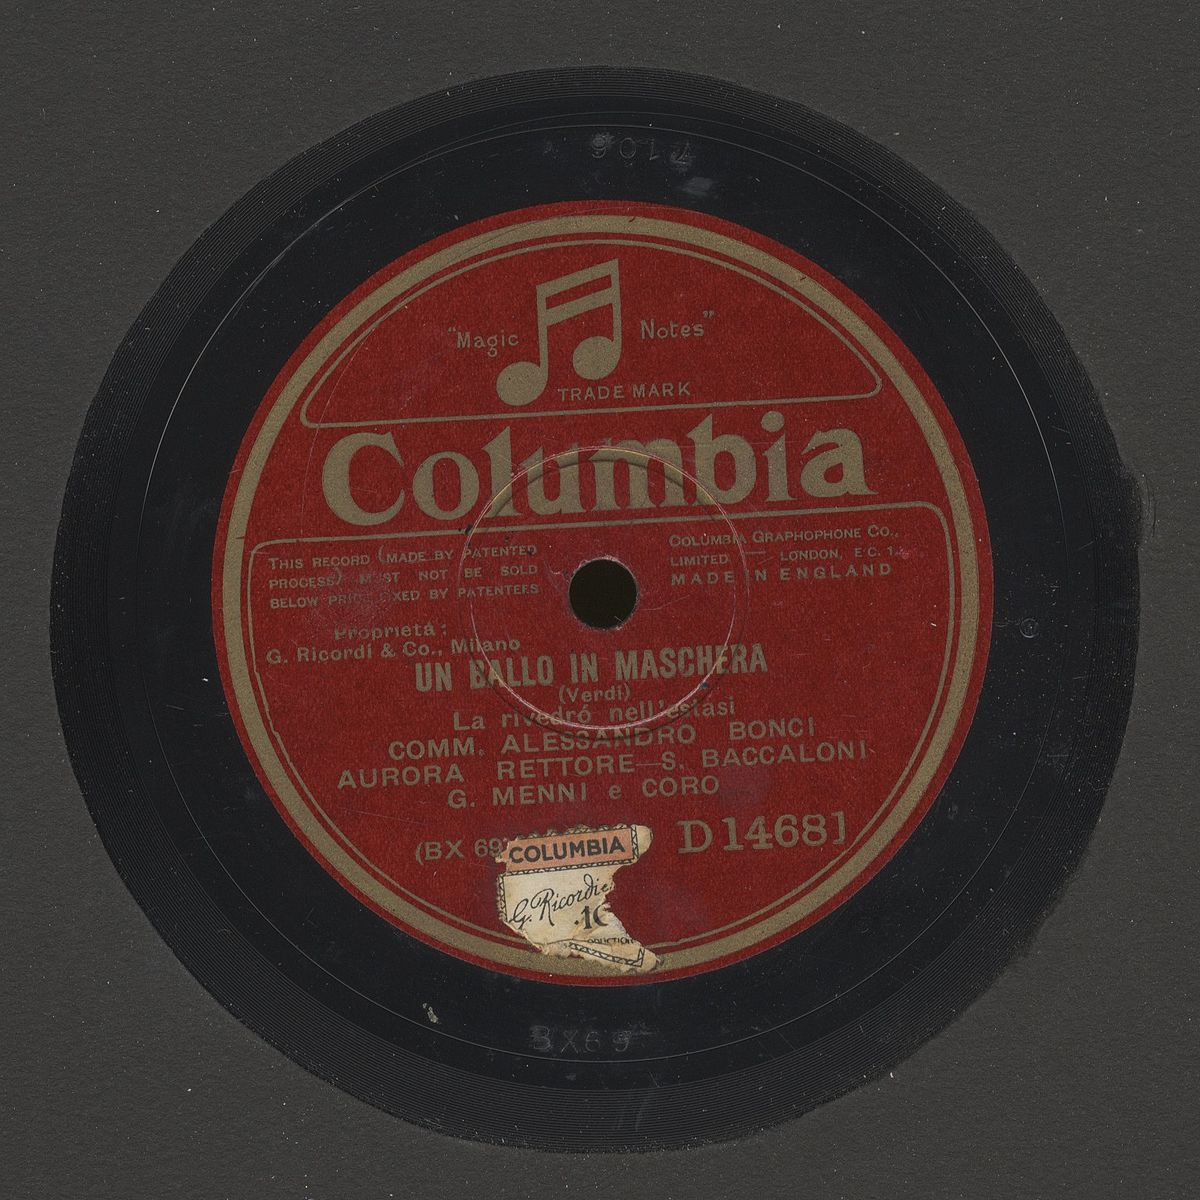 columbia record label dating Hip hop has held its place as a cultural epicenter throughout the last 30+ years, and the most successful hip hop record companies are responsible for defining and delivering the messages that resonate with so many of us.